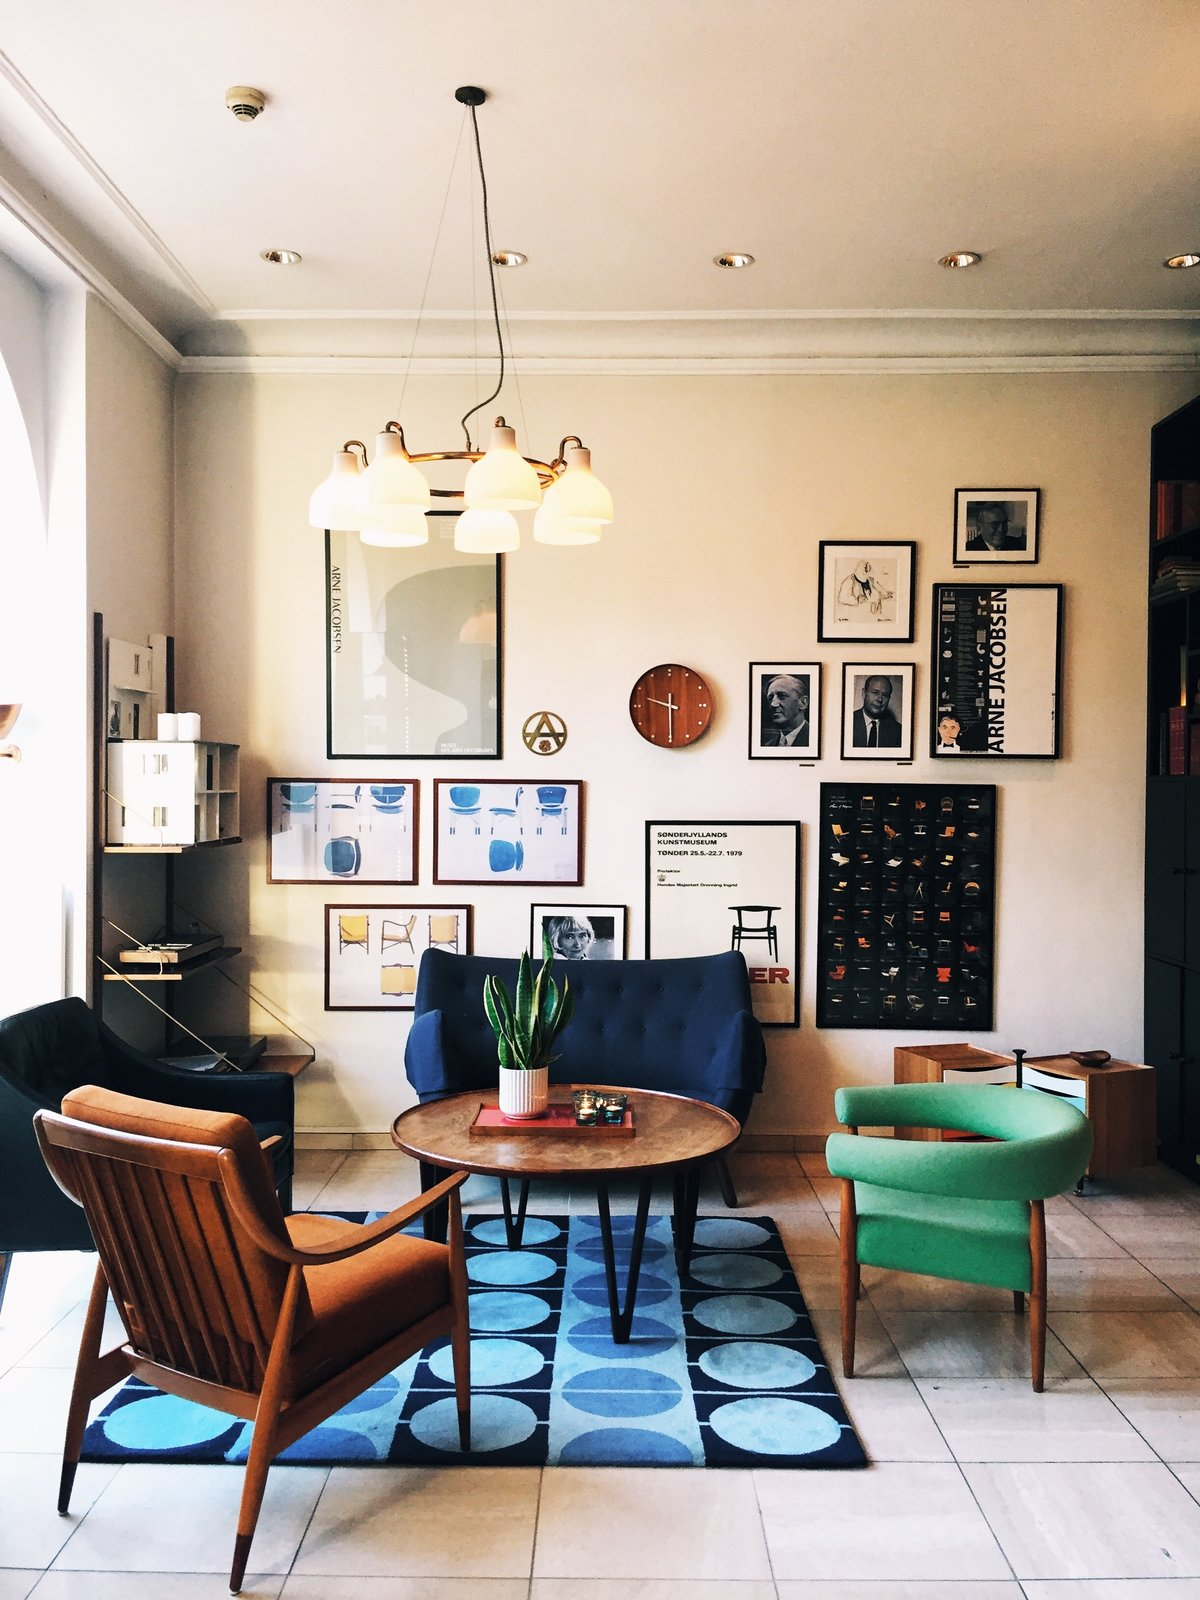 The retro-chic vibe of Copenhagen's Hotel Alexsandra Tagged: Living Room, Chair, Sofa, Coffee Tables, Shelves, Storage, and Pendant Lighting. Get Your Fix of Midcentury Scandinavian Design at This Copenhagen Hotel - Photo 2 of 9